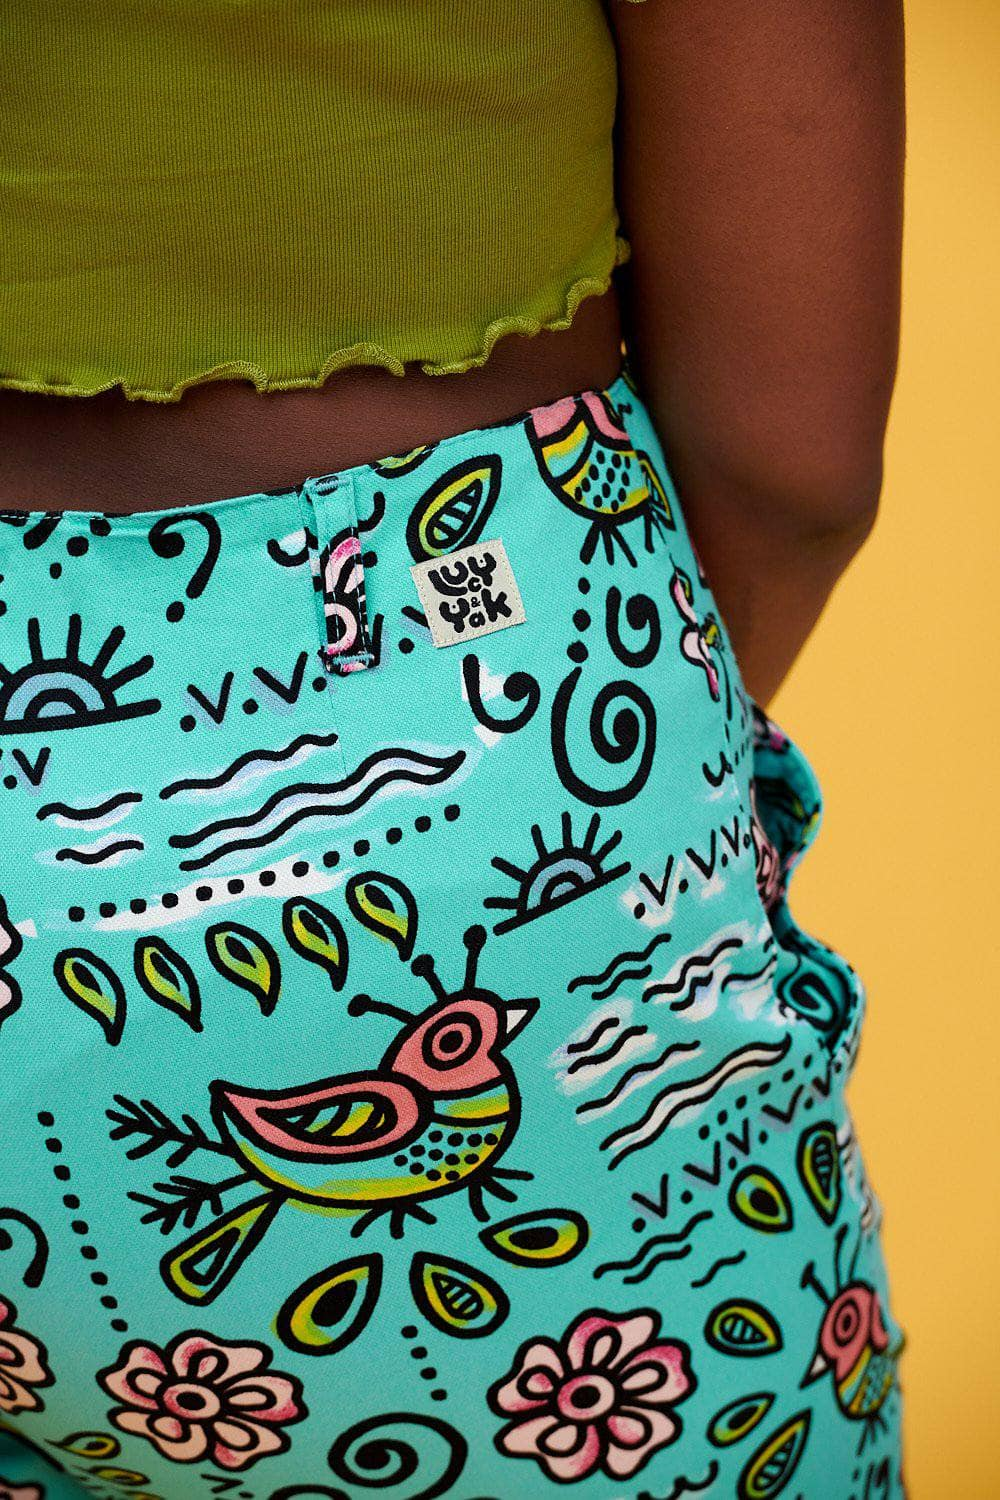 Lucy & Yak trousers 'Camden' Organic Cotton High Waisted Trousers in Turquoise Bird Print